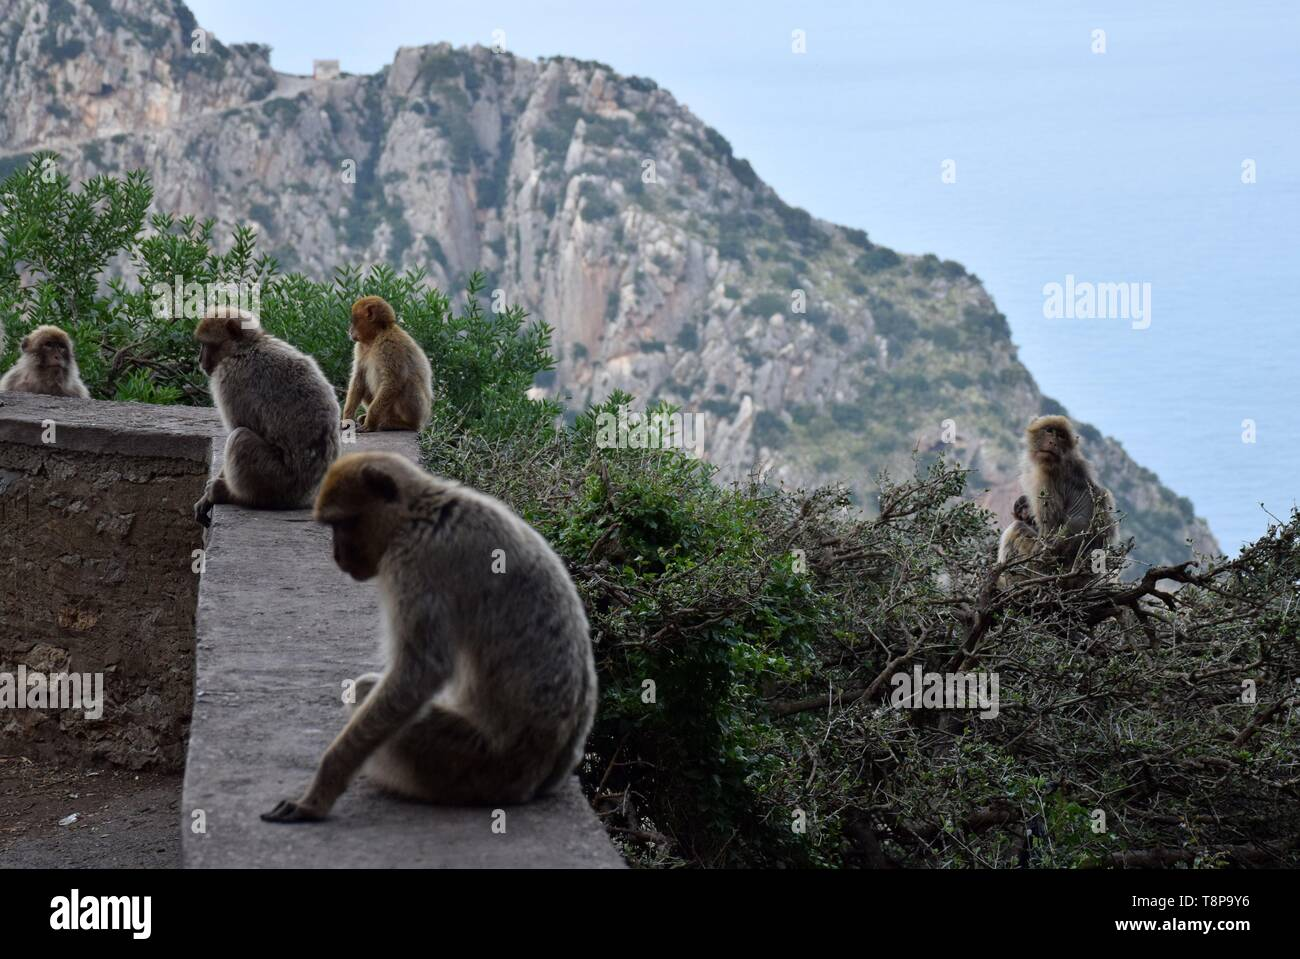 The viewpoint Cap Carbon with monkeys on 02.04.2019 near the port of Bejaia - Algeria. | usage worldwide Stock Photo